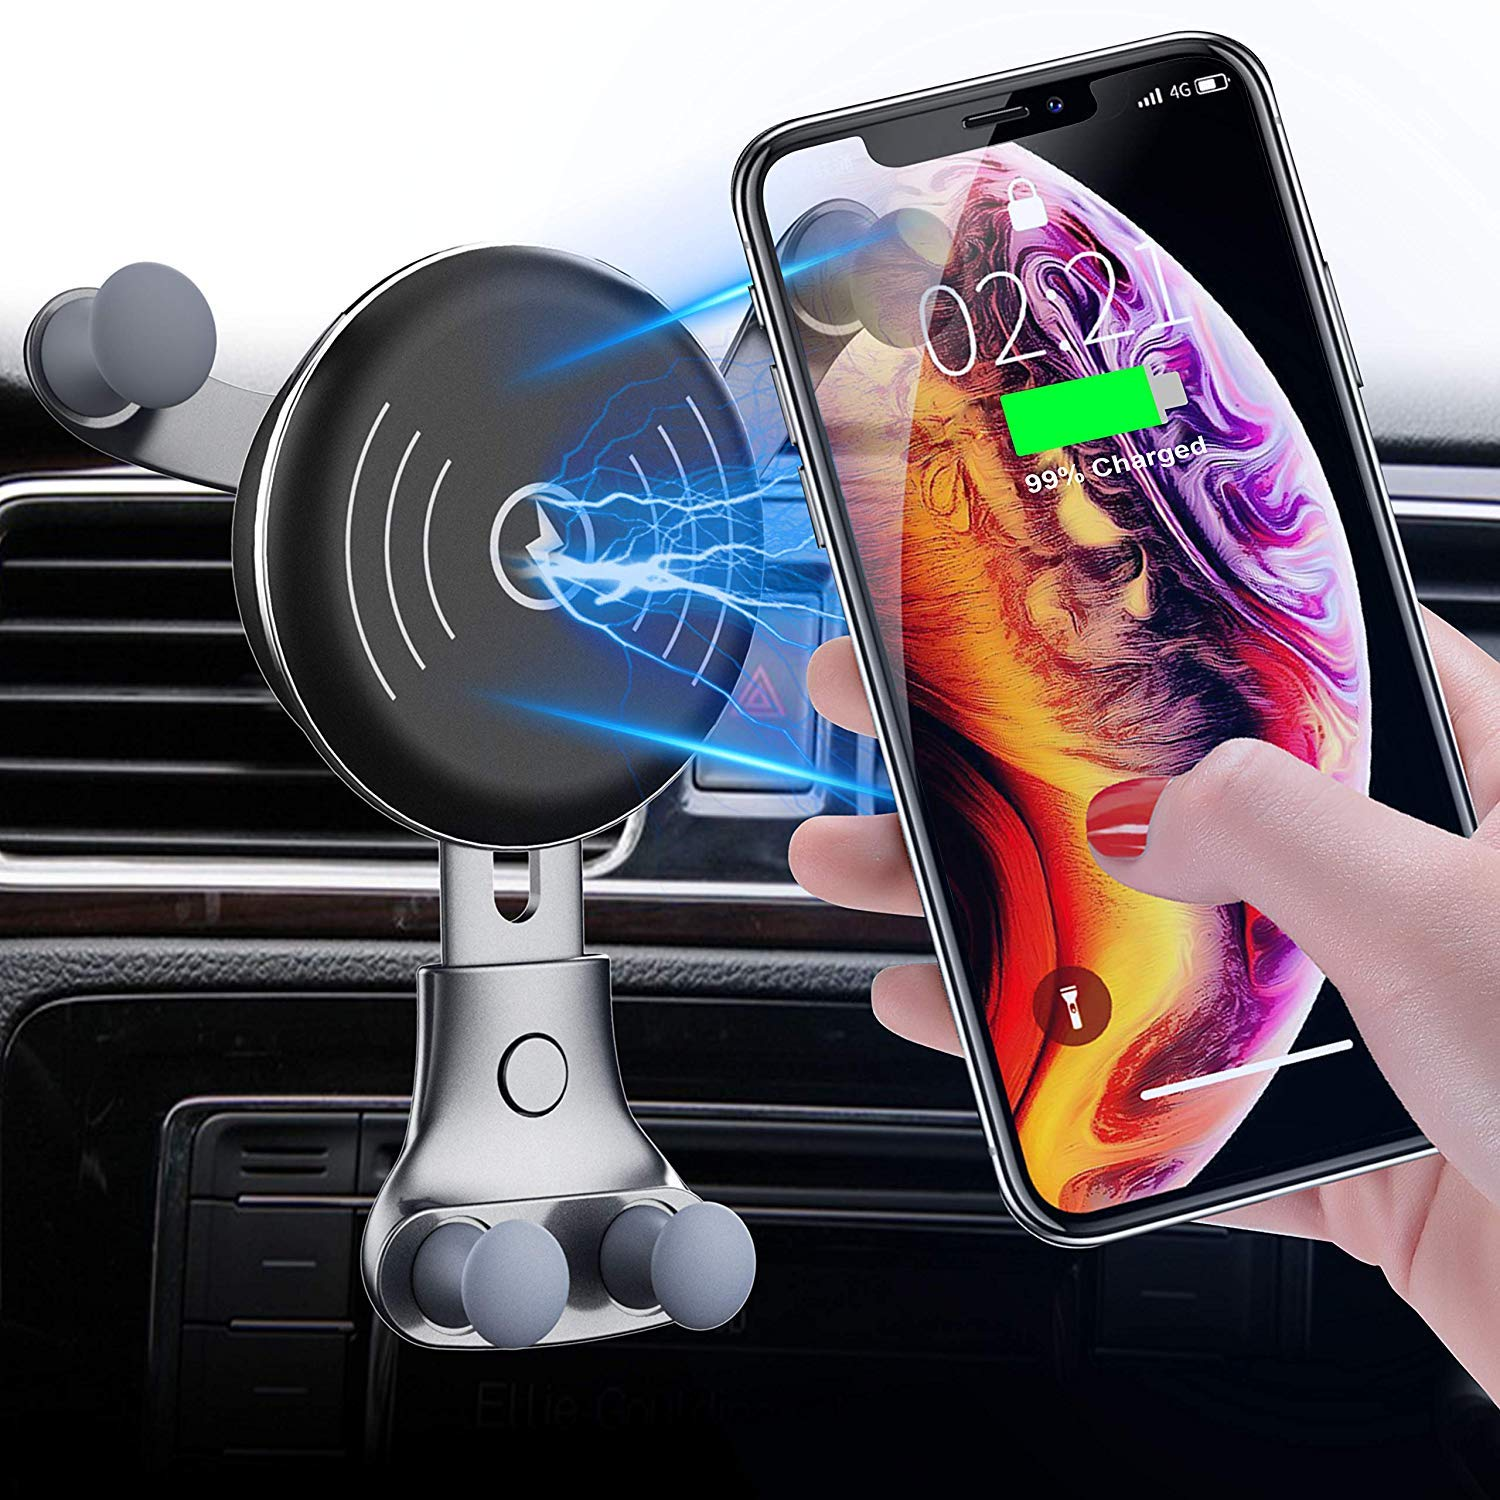 New Wireless Car Charger Air Vent Phone Holder 10W Compatible for Samsung Galaxy S10//S9//S9+//S8 7.5W Compatible for iPhone Xs Max//Xs//XR CHARGER070514